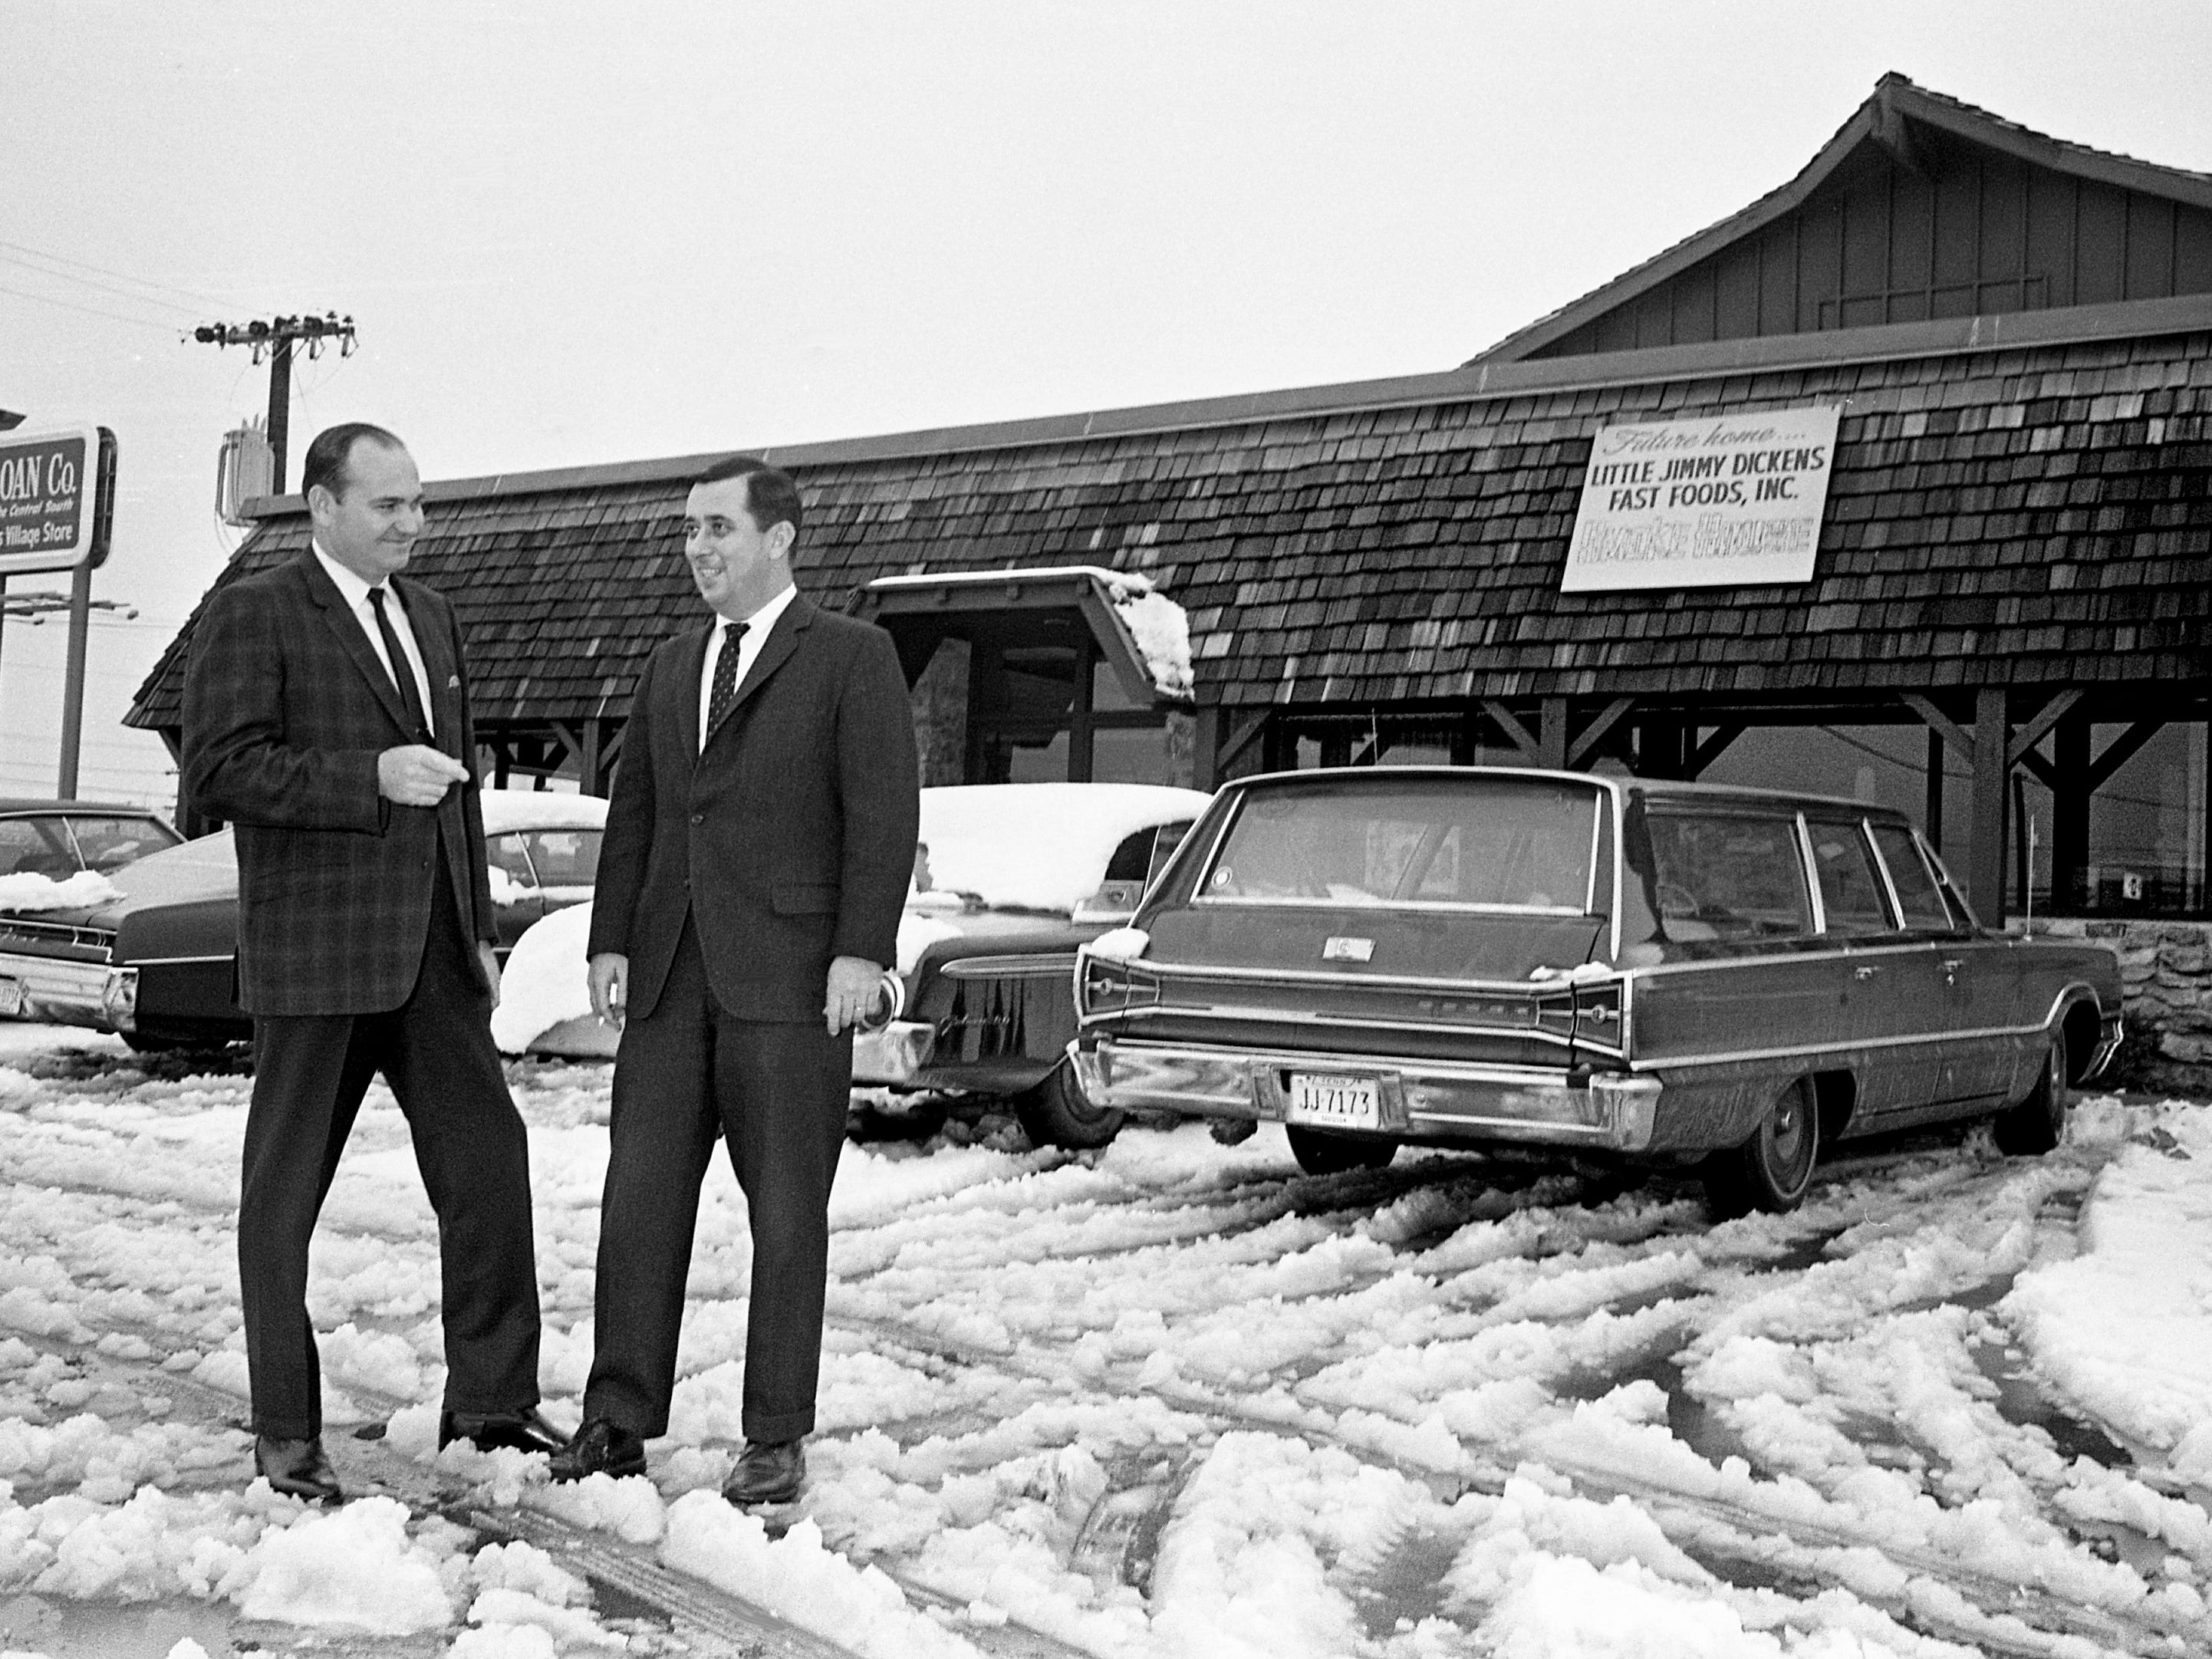 "Despite the snow blanketing Nashville on Jan. 27, 1969, Paul Shockley, left, executive vice president, and W.G. ""Bill"" Webber, president, check on their Little Jimmy Dickens Fast Foods Inc.'s just-opened pilot store, Little Jimmy Dickens Smokehouse at 2030 Richard Jones Road."